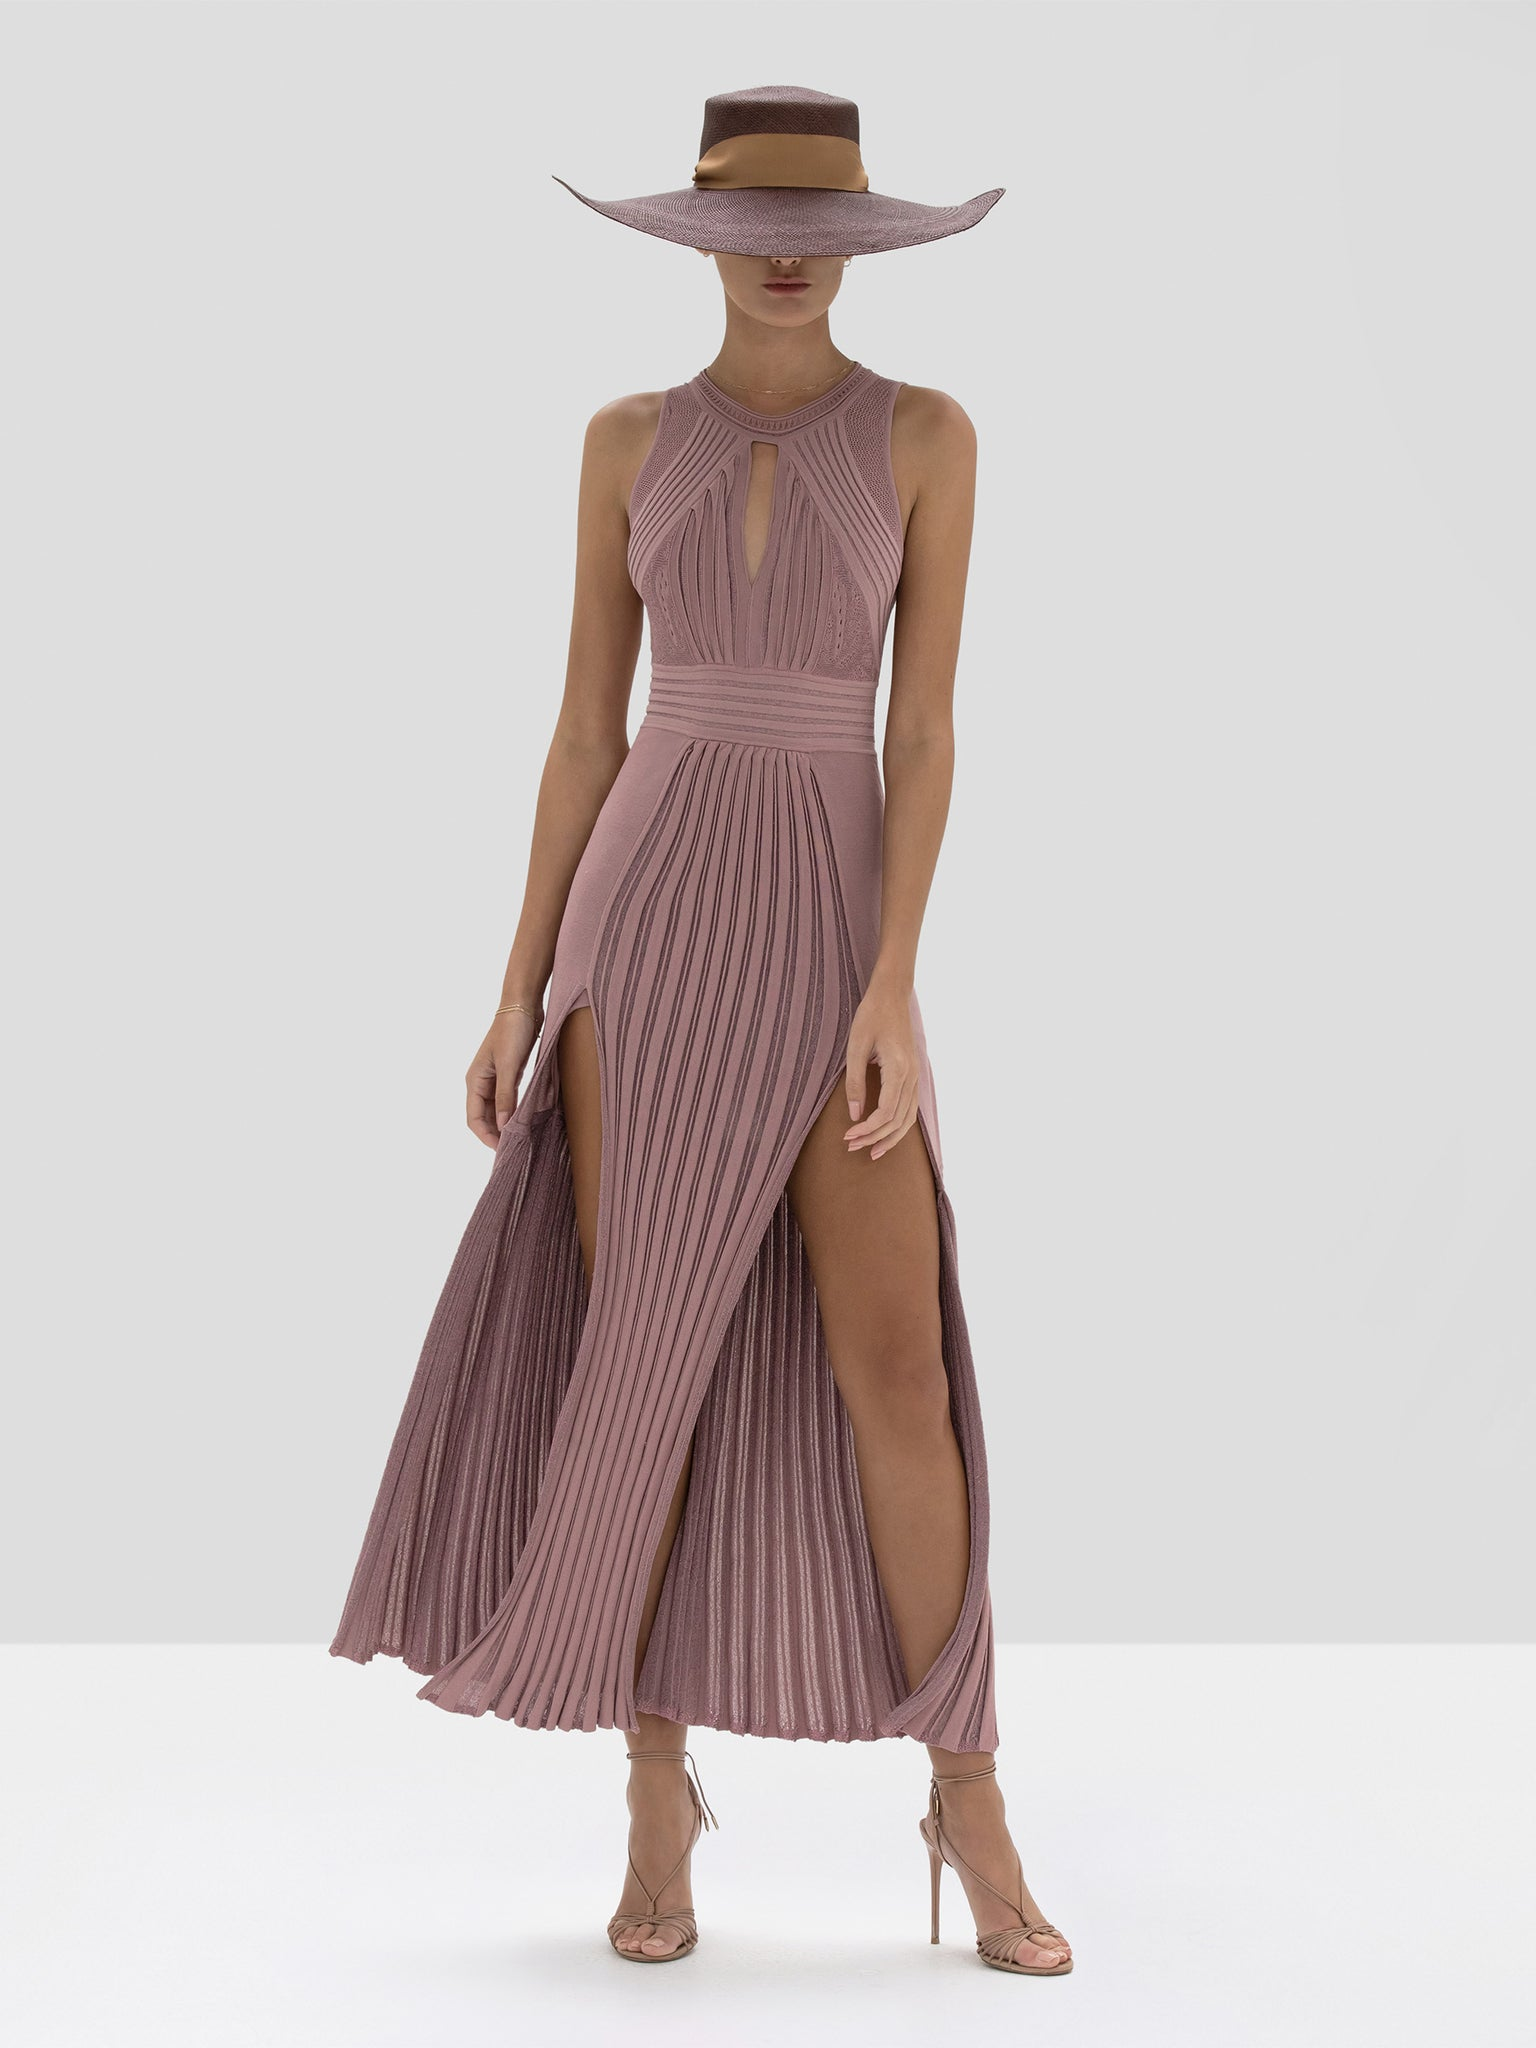 Alexis Gara Dress in Dusty Rose from Spring Summer 2020